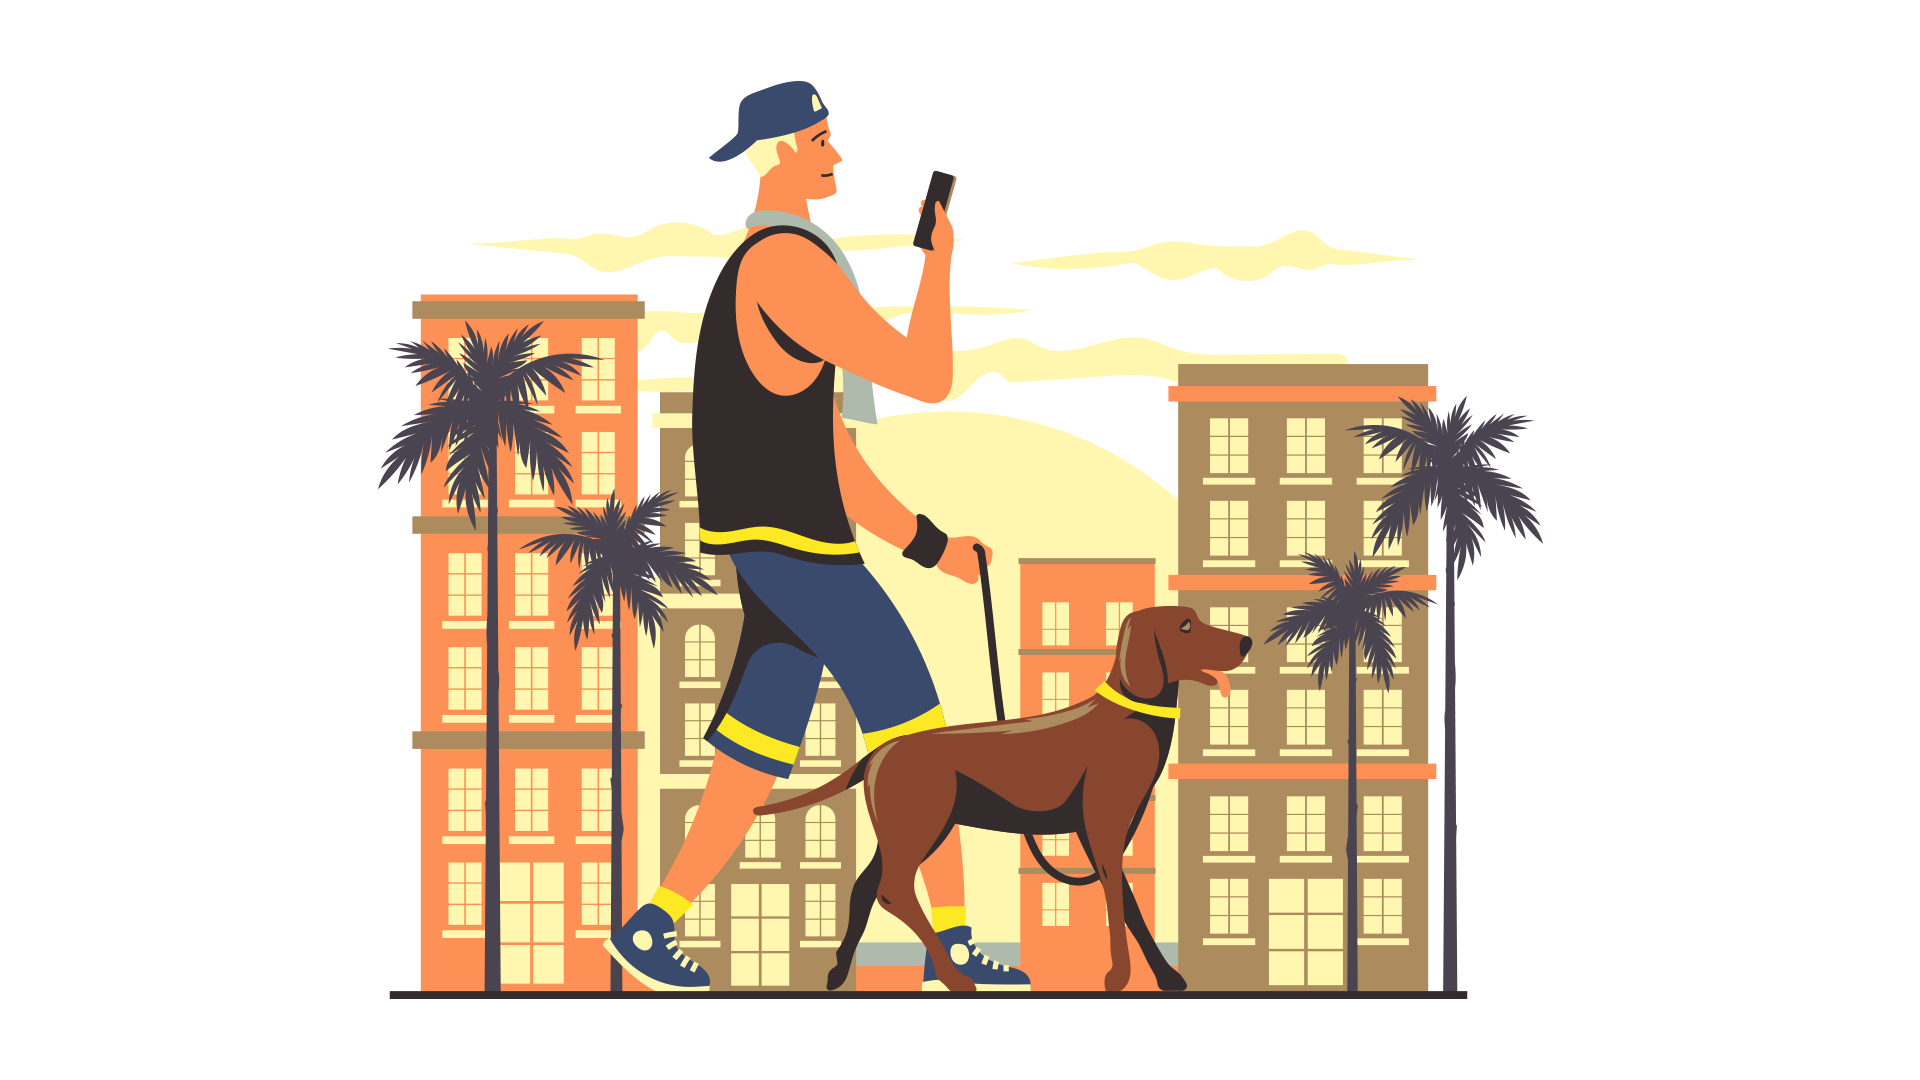 How to Develop an On Demand Dog Walking Service